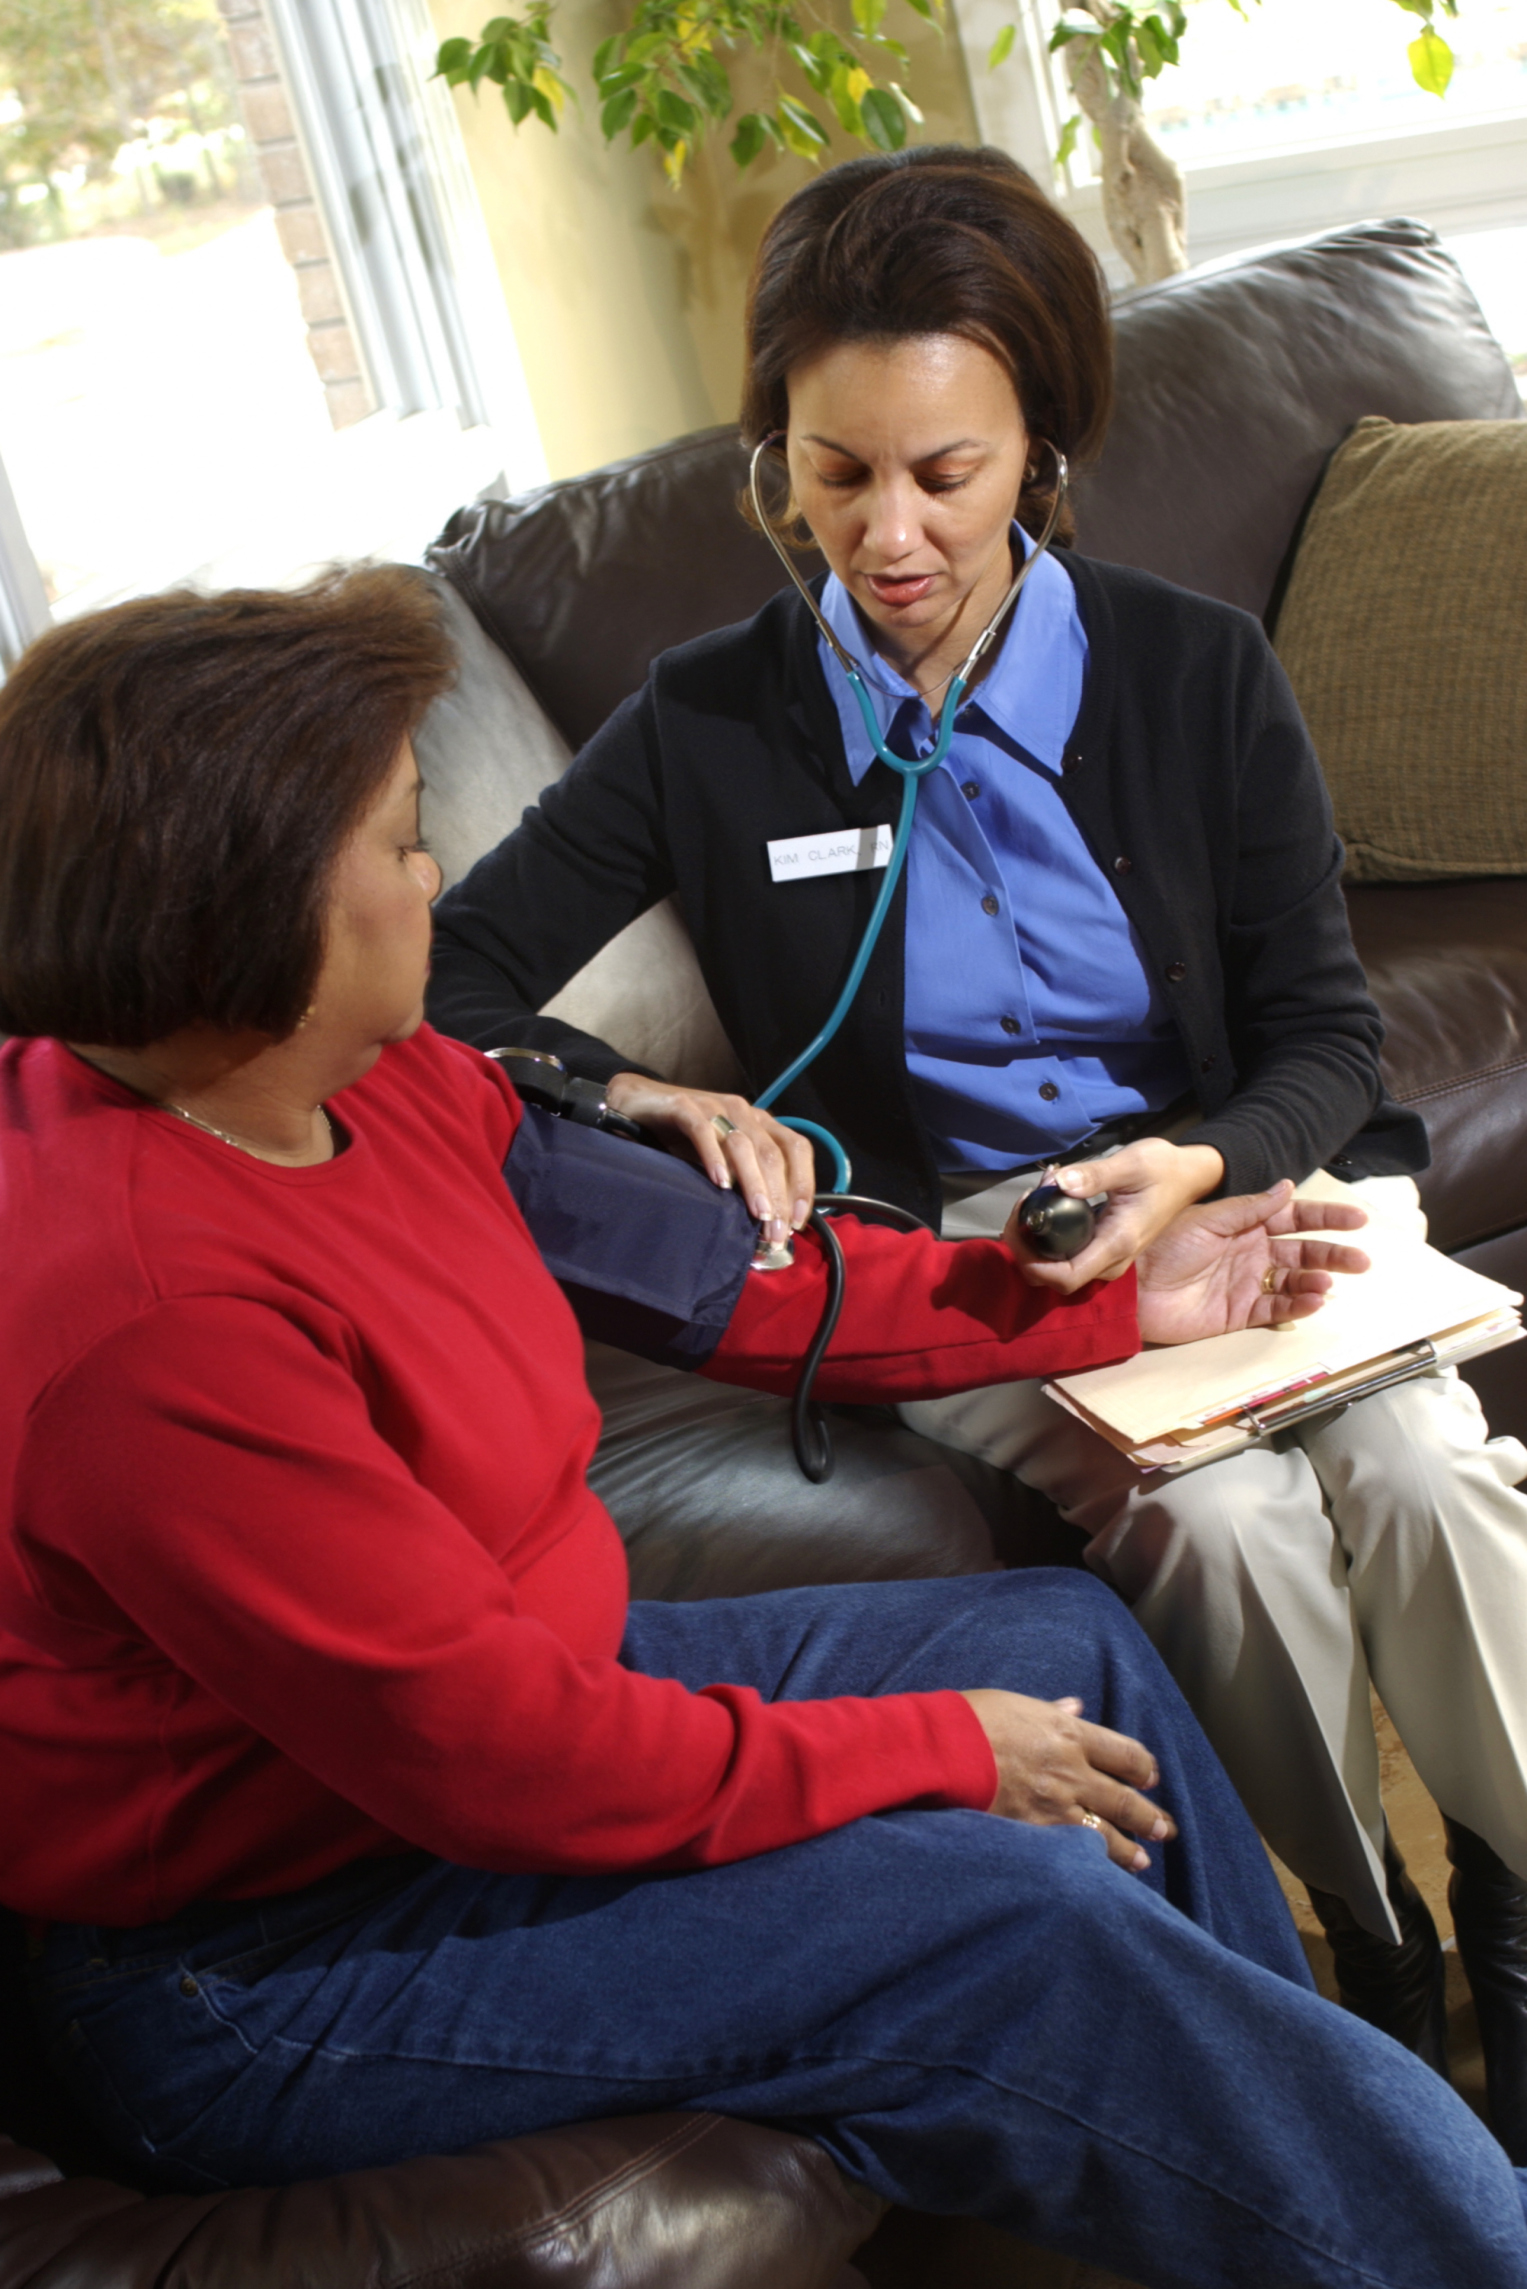 Mileage Reimbursement for Home Care Services | Your Business